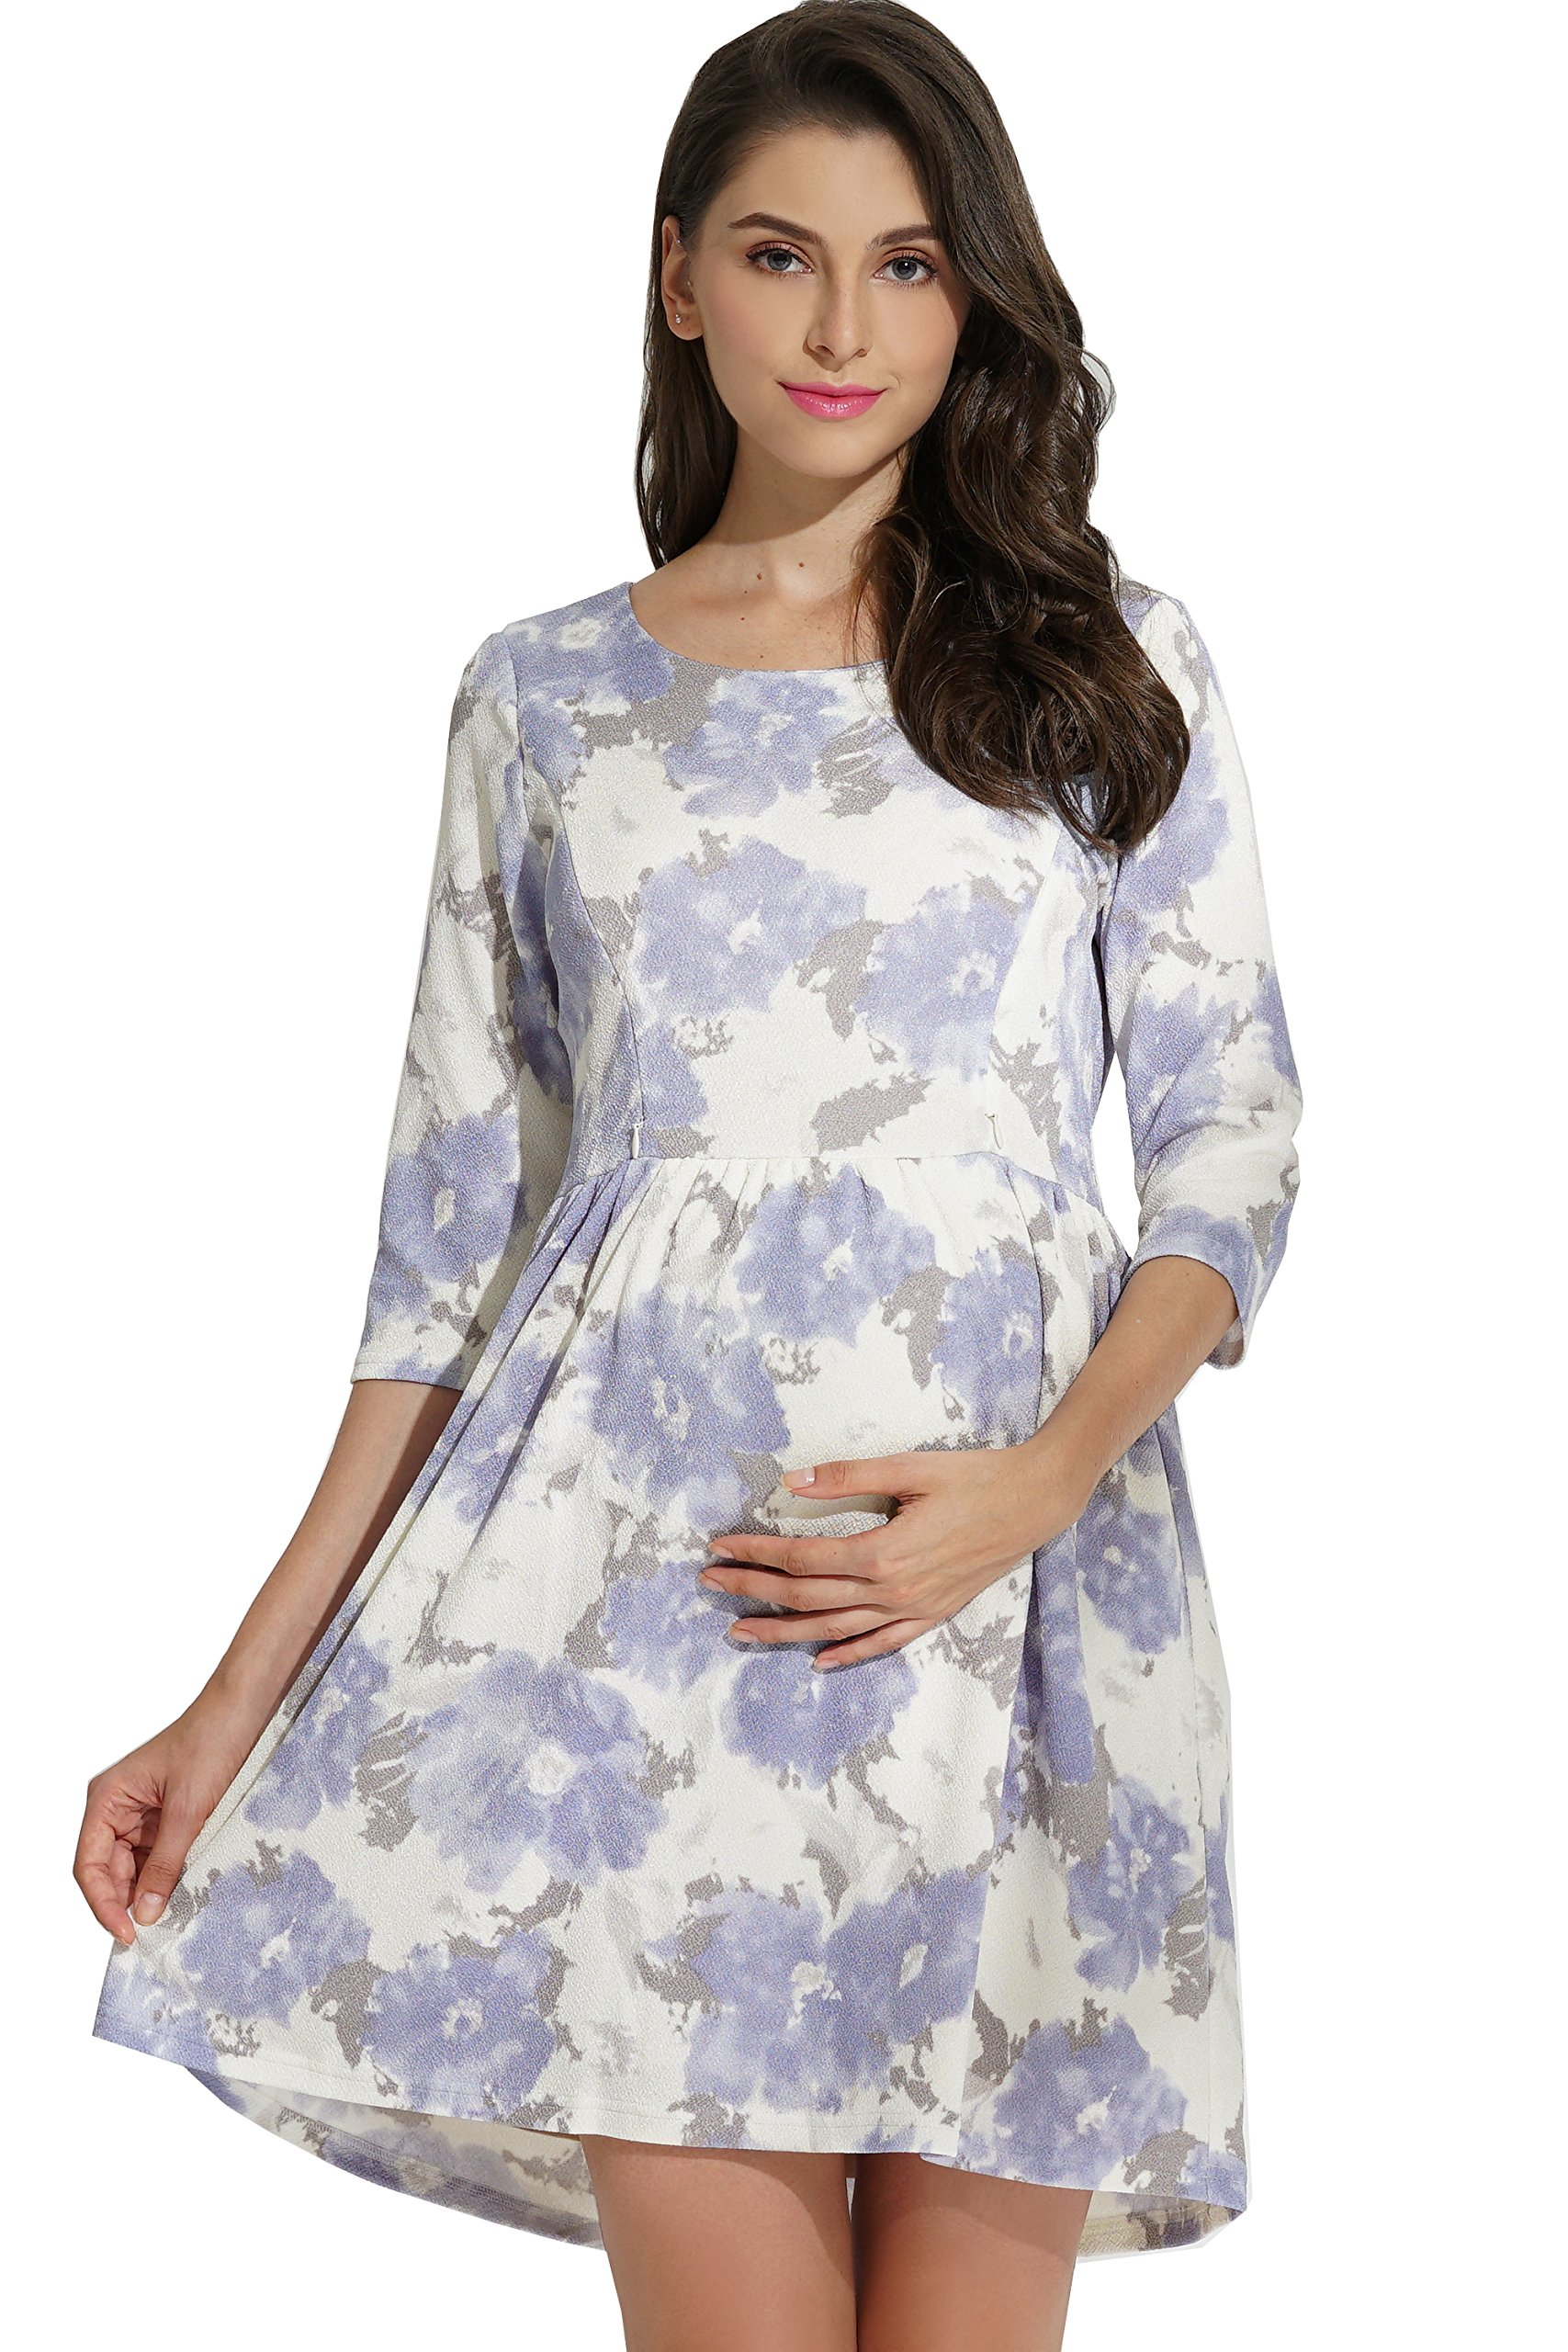 Sweet Mommy Maternity and Nursing Floral Print Baby Shower Party Dress, Blue M